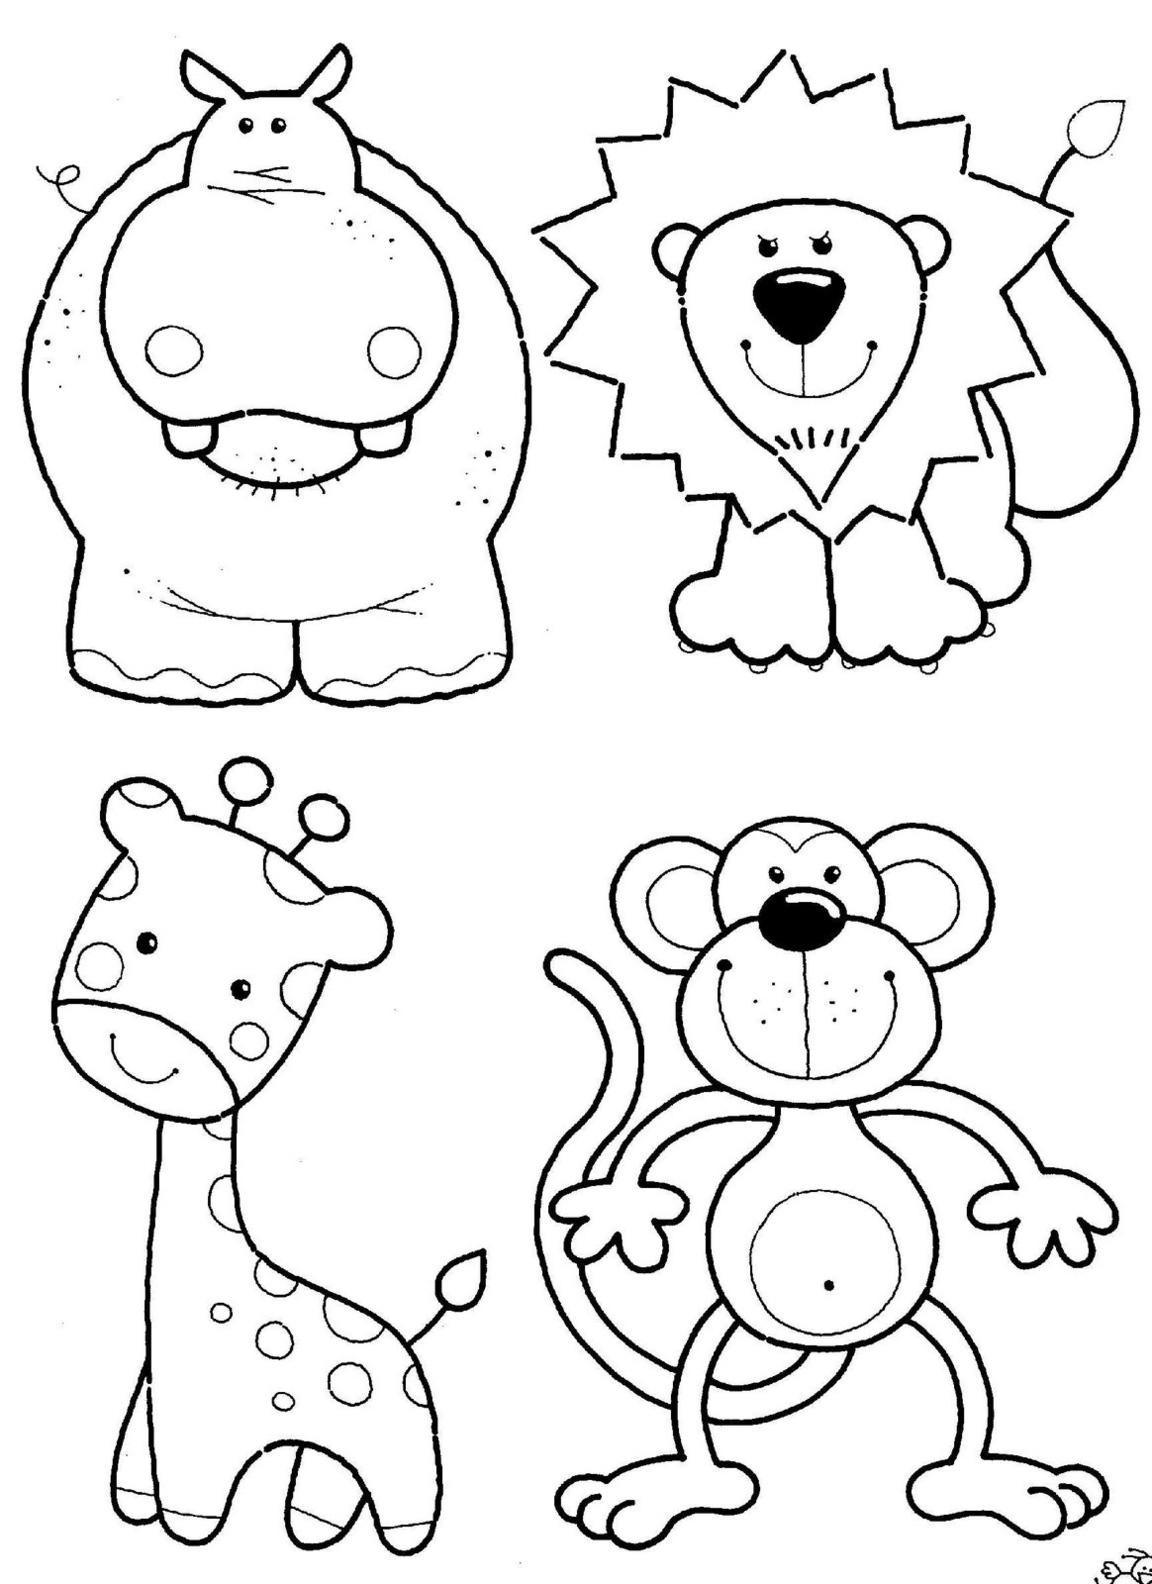 printable jungle animals coloring pages jungle animals drawing at getdrawings free download pages animals printable coloring jungle